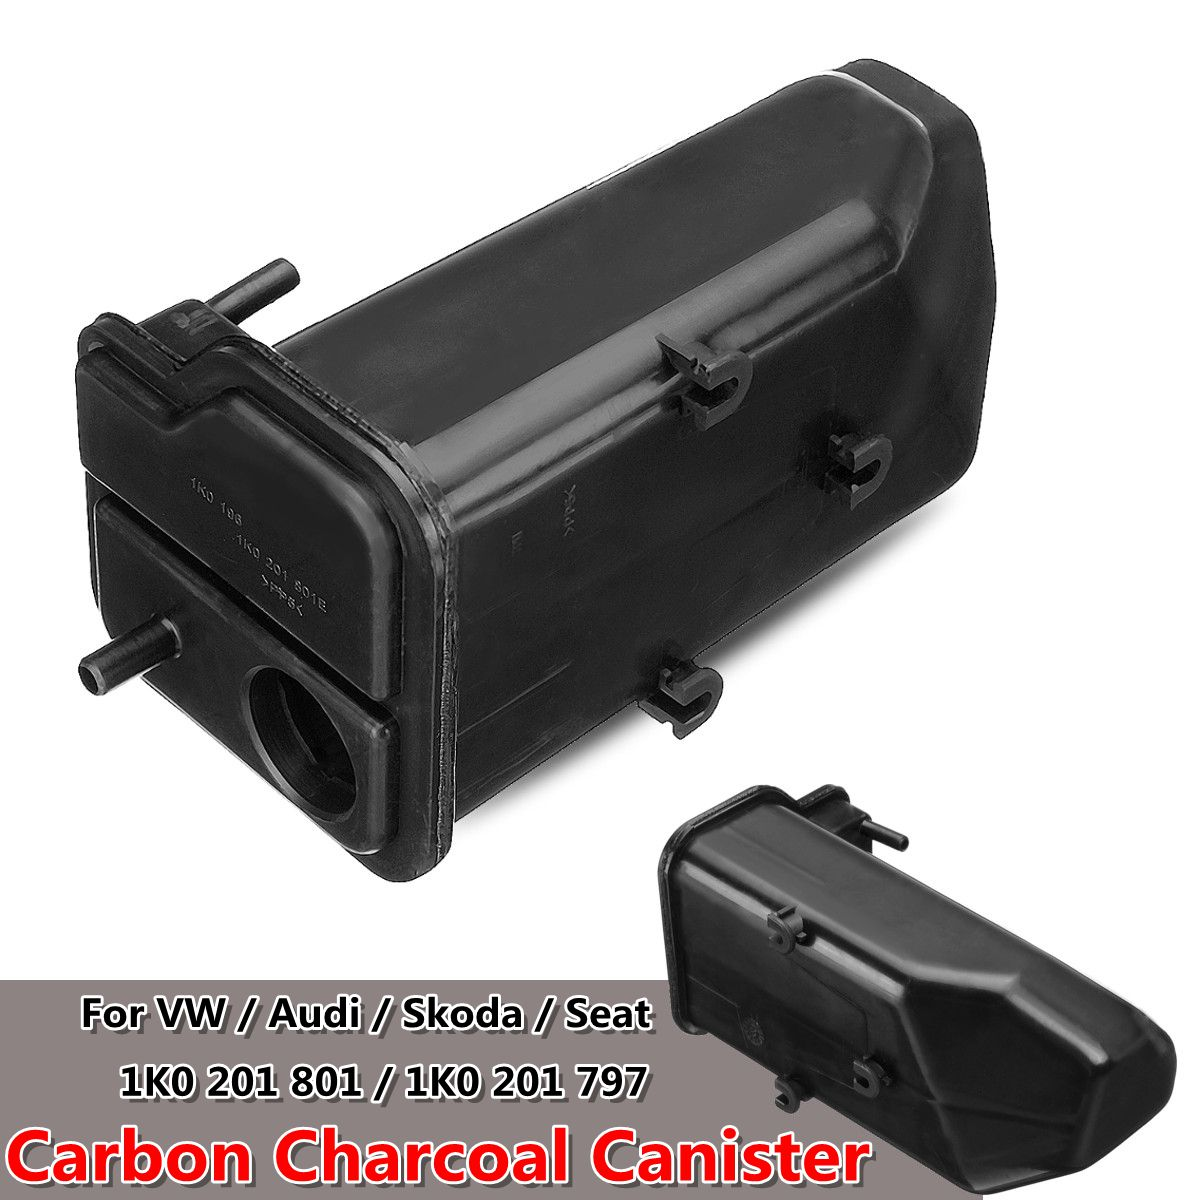 1K0 201 801 Car Carbon Charcoal Canister For Volkswagen For VW/Jetta/Golf For Audi A3 TT For Skoda Seat 1K0 201 801E 1K0 201 797